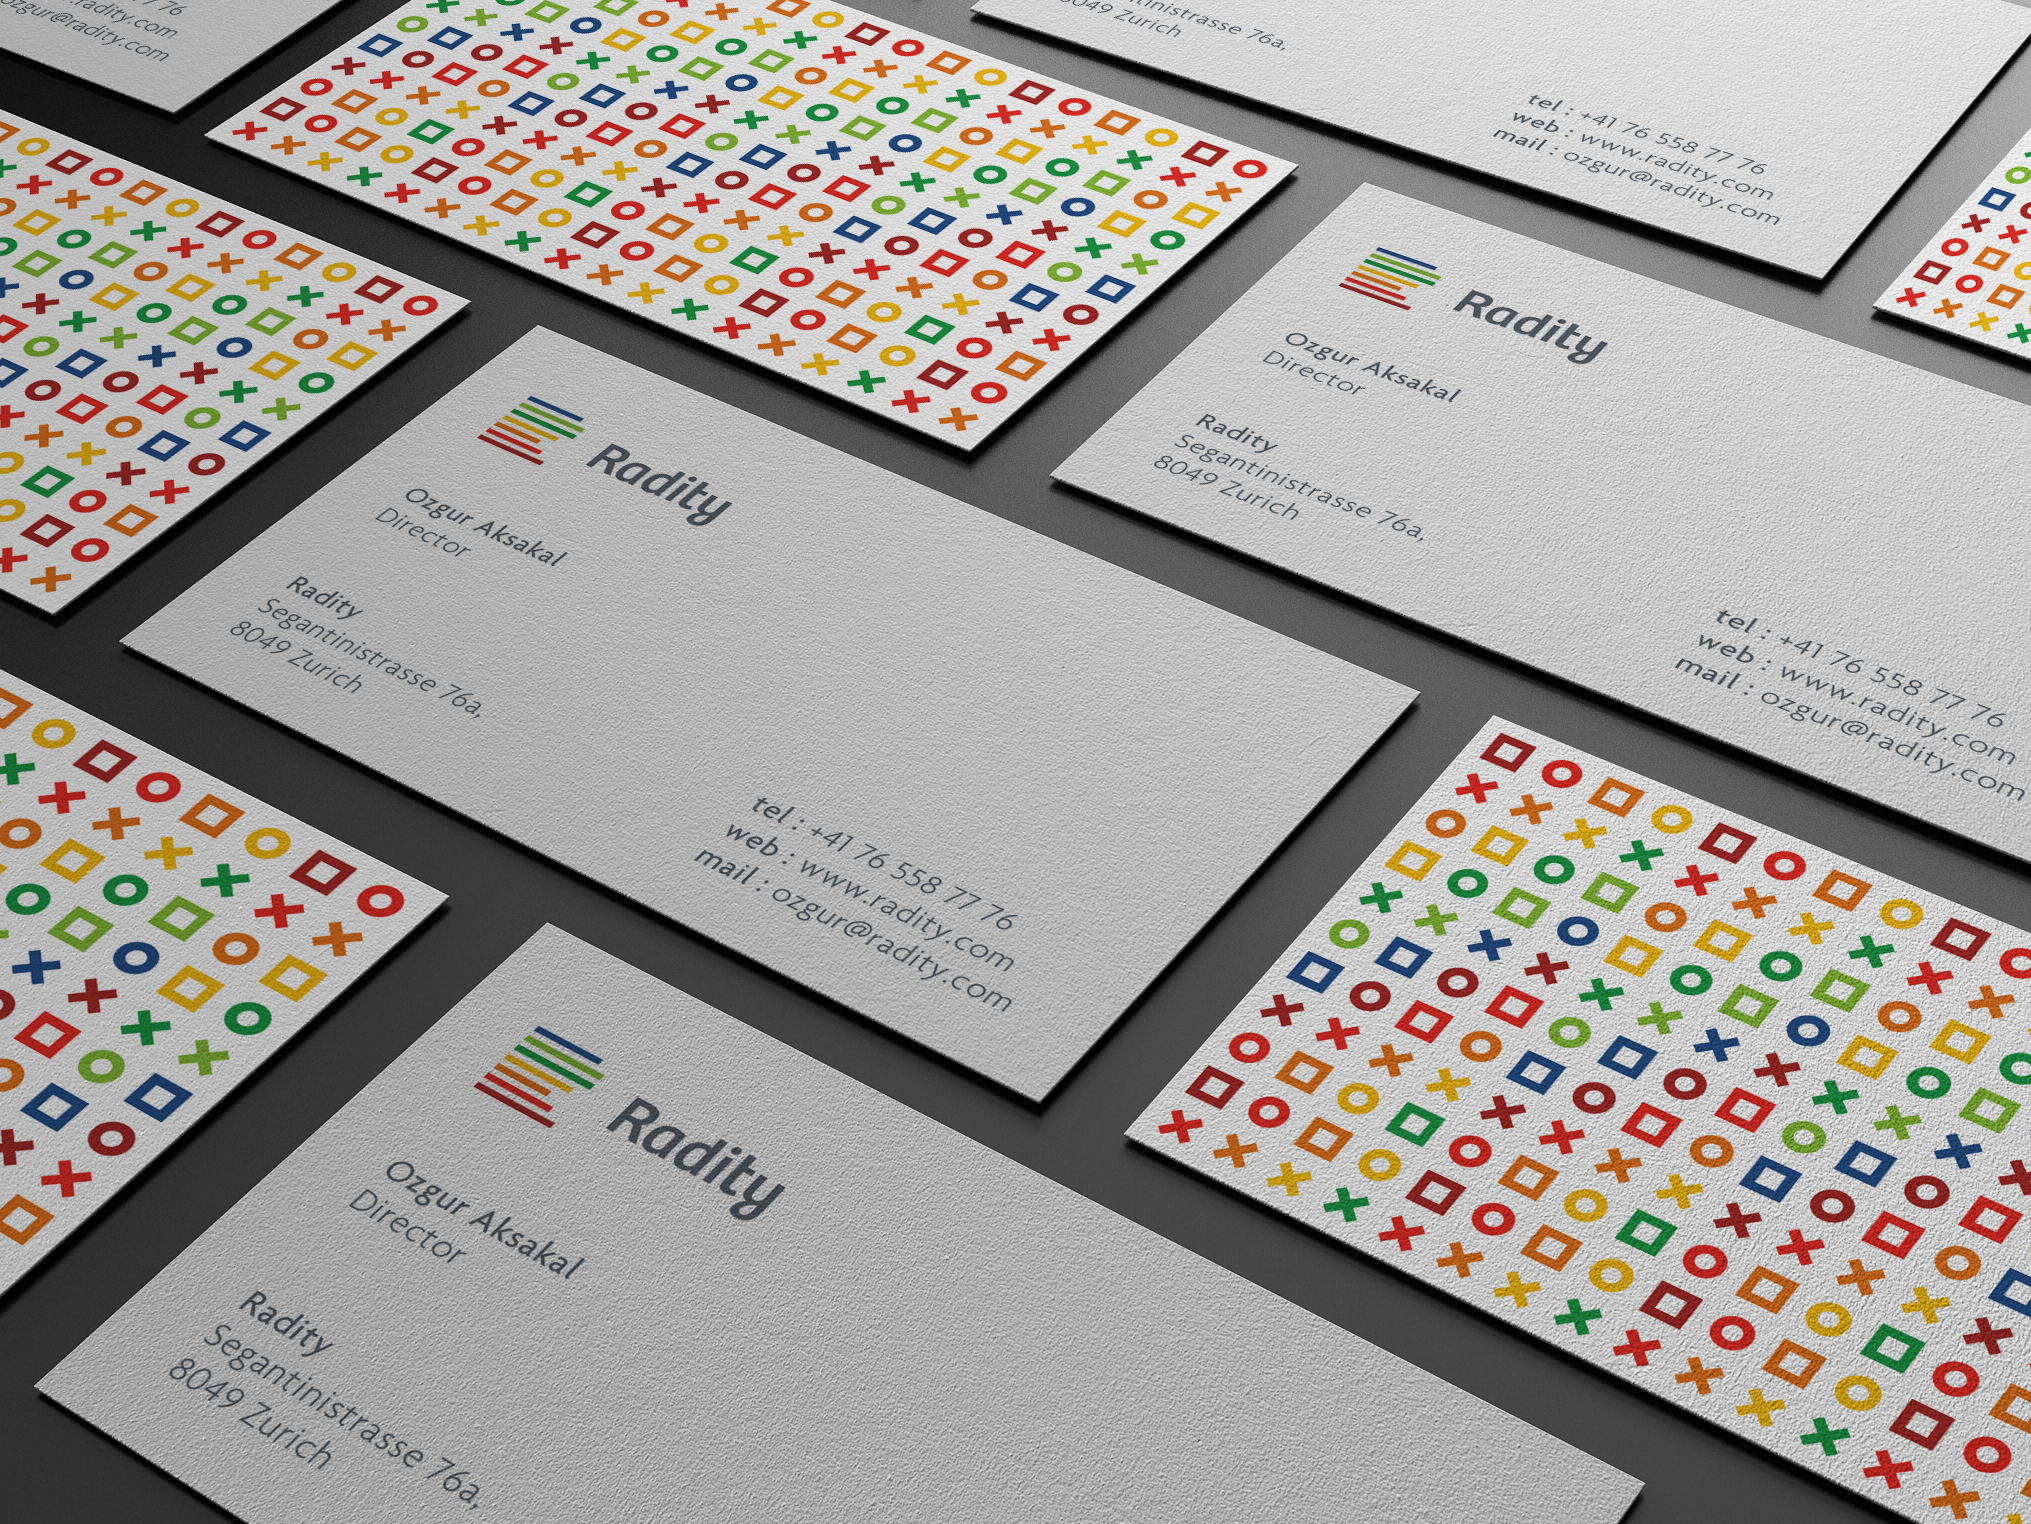 Radity - business card inspiration